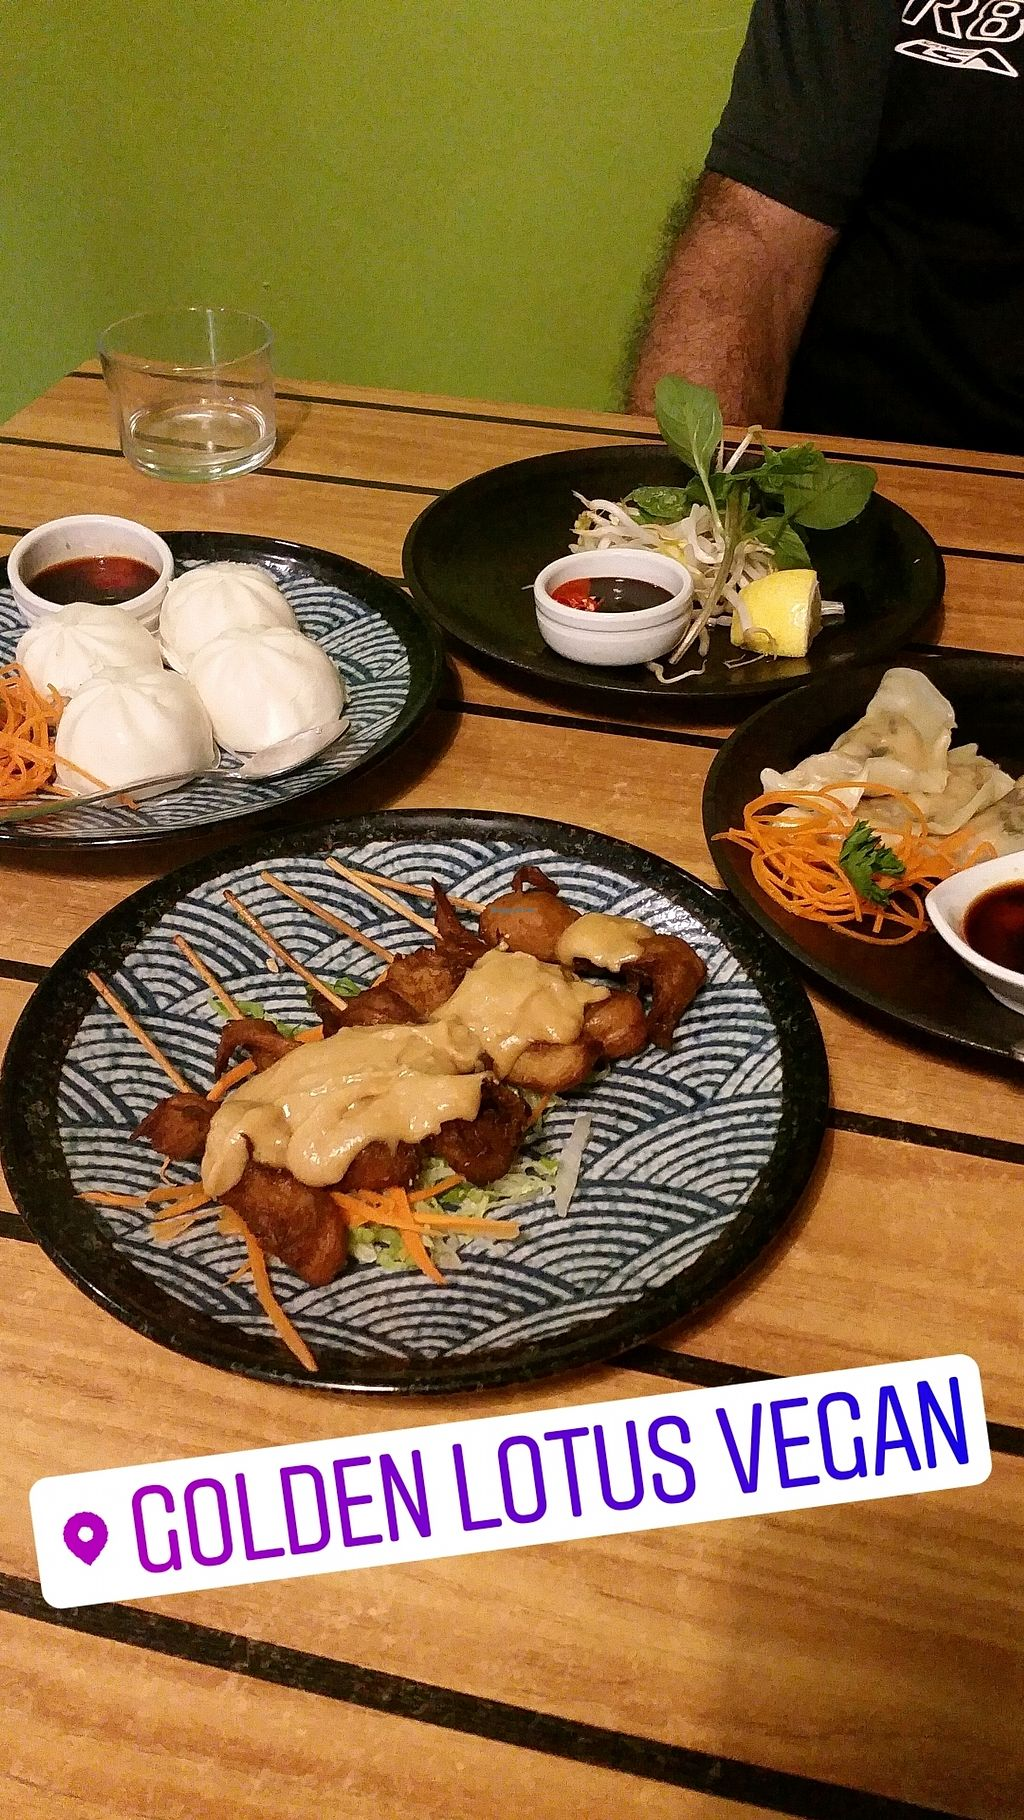 """Photo of Golden Lotus Vegan  by <a href=""""/members/profile/JulianaMurace"""">JulianaMurace</a> <br/>entrees - satay sticks, steamed buns and dumplings <br/> August 26, 2017  - <a href='/contact/abuse/image/60395/297331'>Report</a>"""